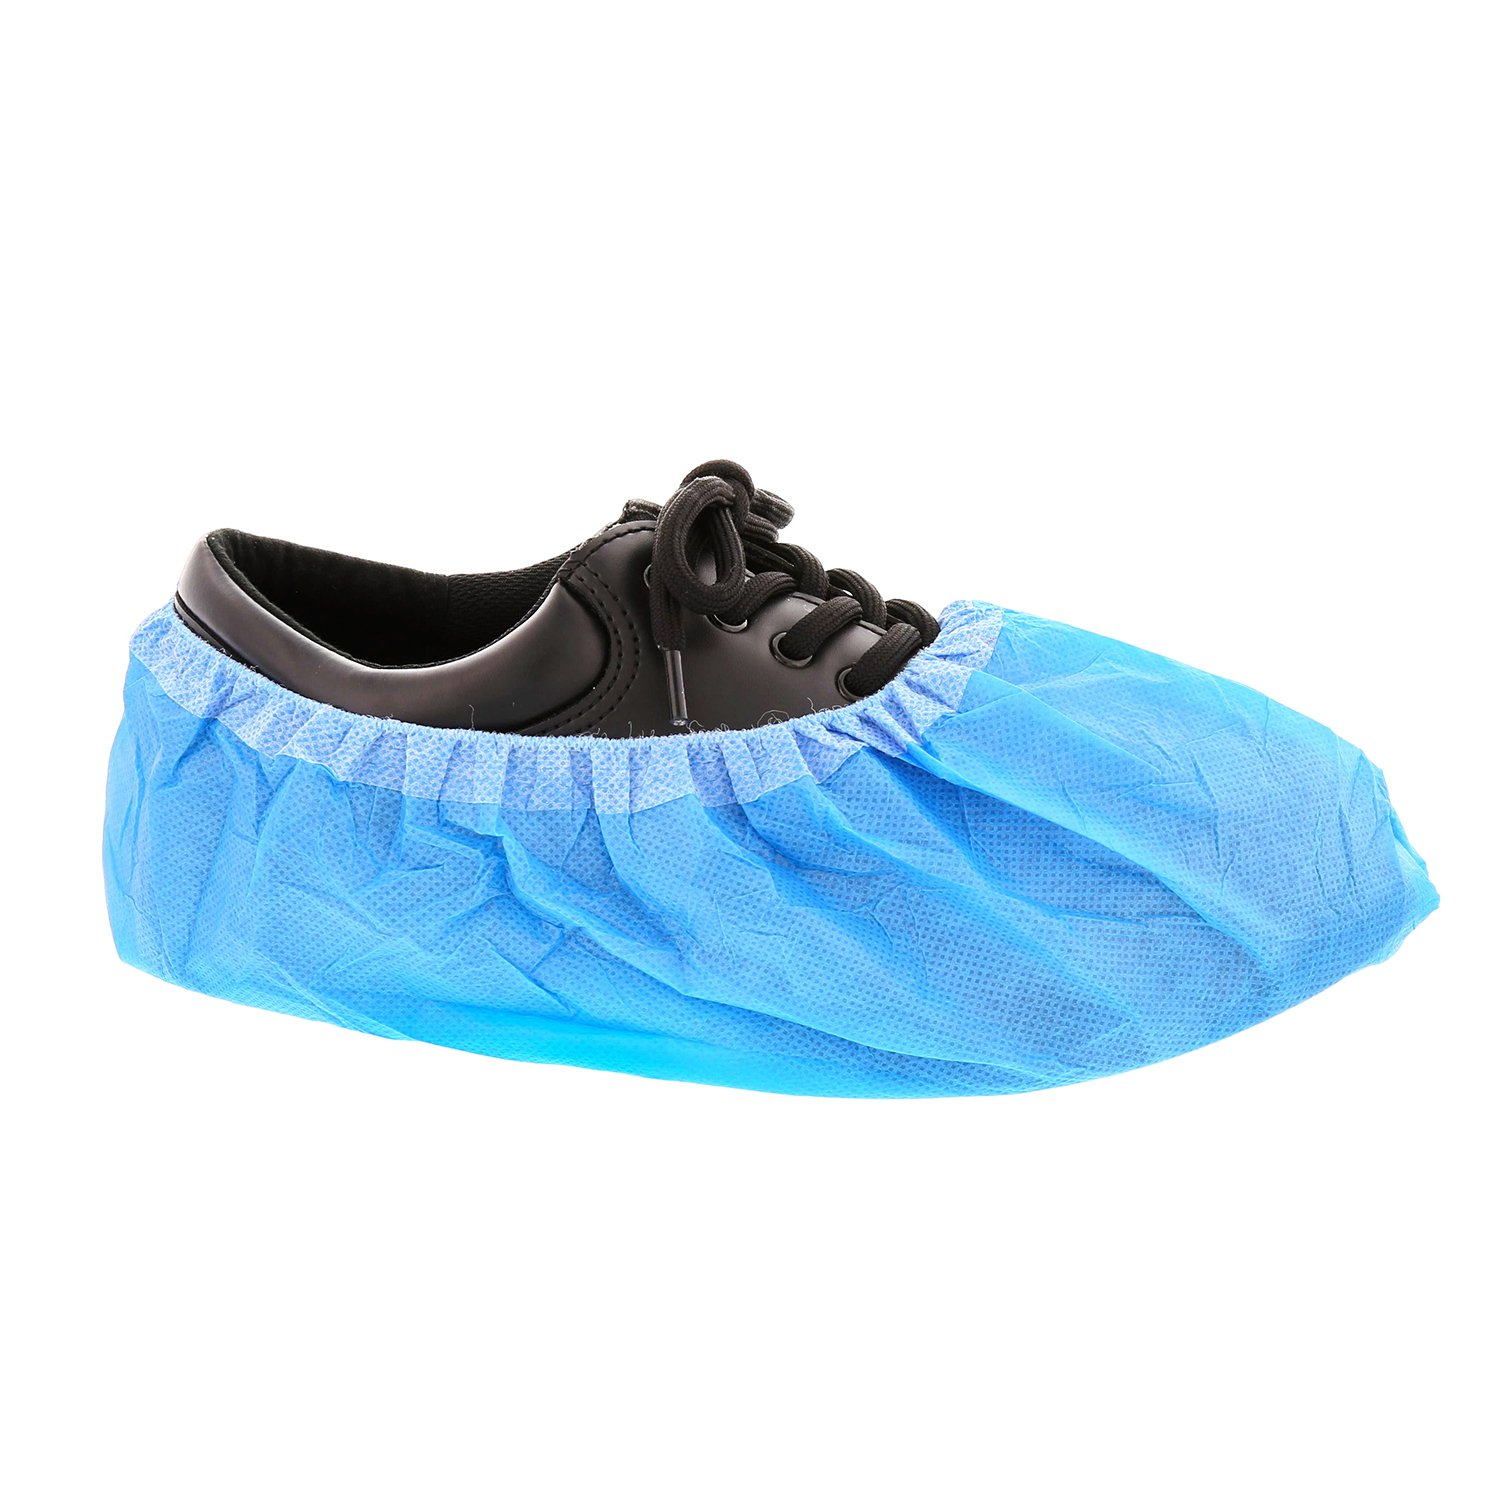 Royal 16.5 Inch Blue Super Sticky Shoe Covers, Case of 150